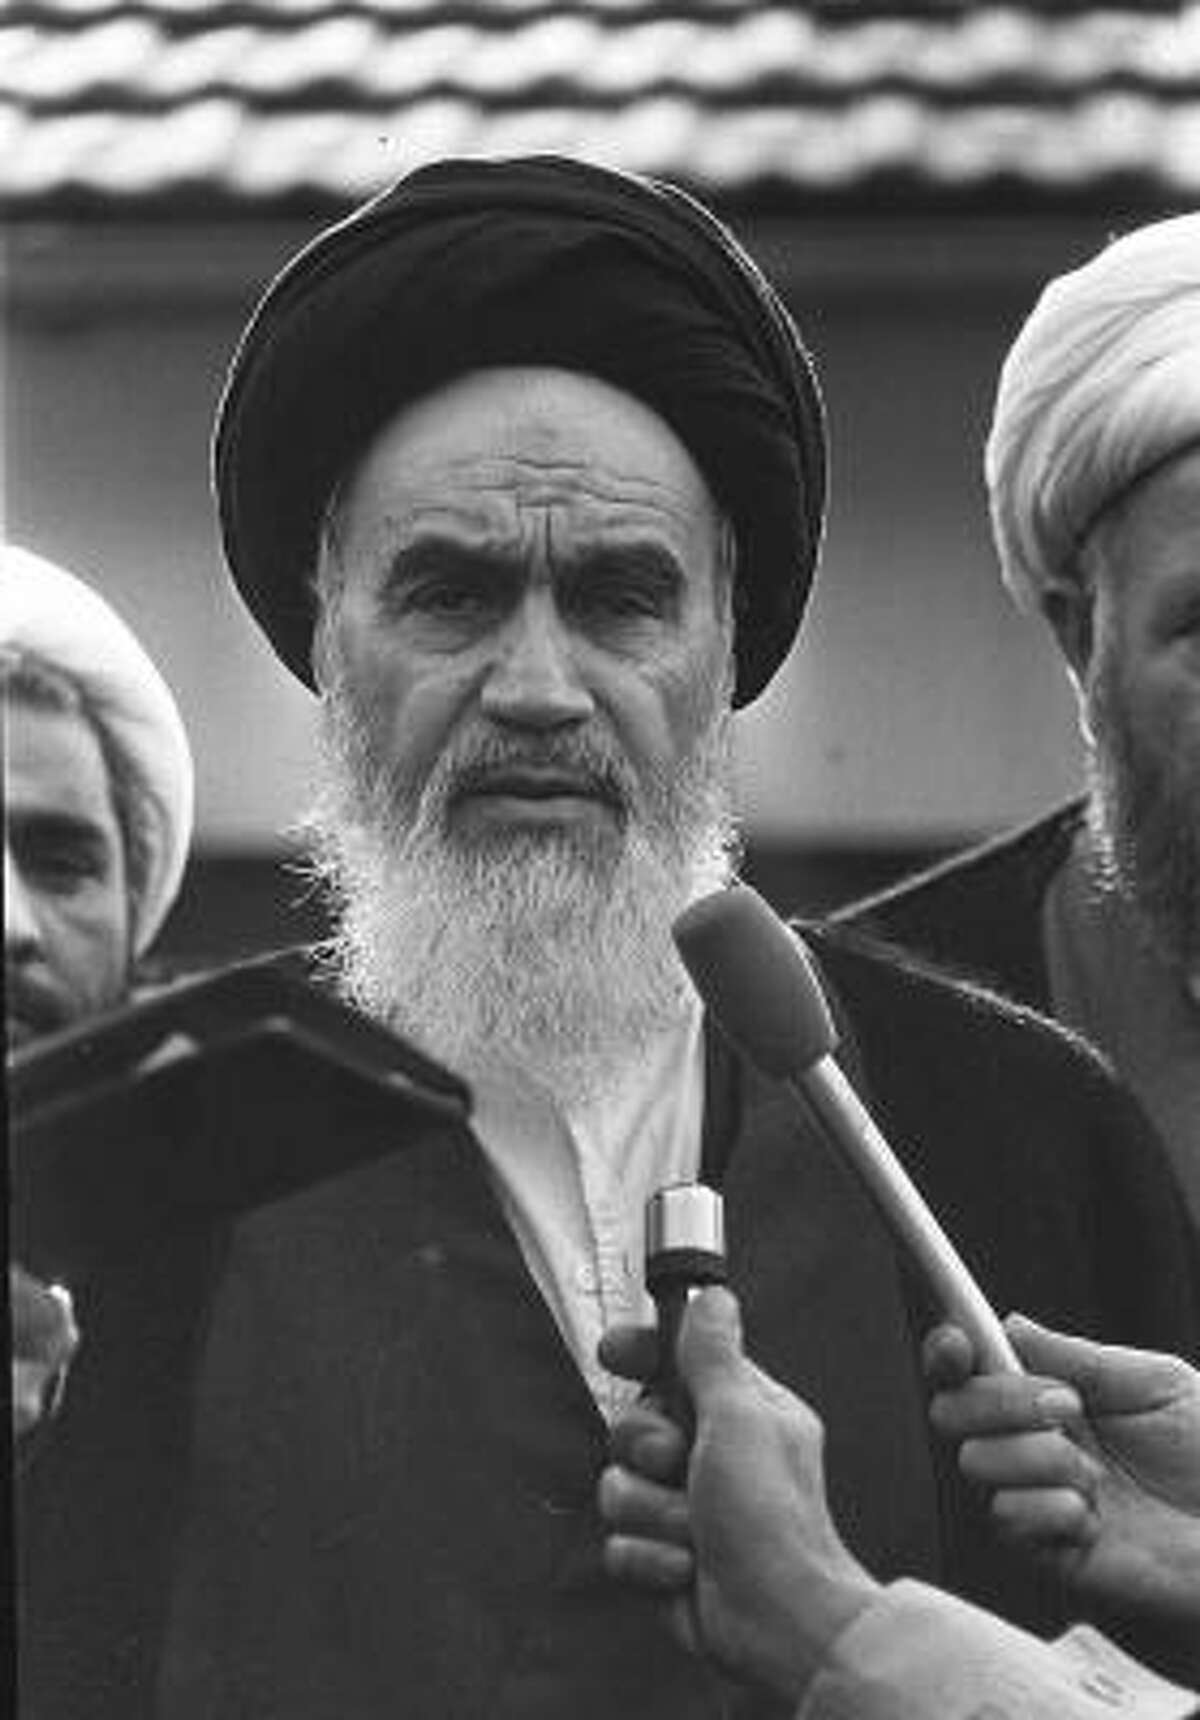 IslamIt is said that the Muslim prophet Mohammed instructed his followers to cut their moustaches and allow their beards to grow. While there are several schools of thought concerning shaving in Islam, growing a moustache and a beard is mandatory for all Muslim men who can do so. Pictured here is Iranian religious leader Ayatollah Khomeini.